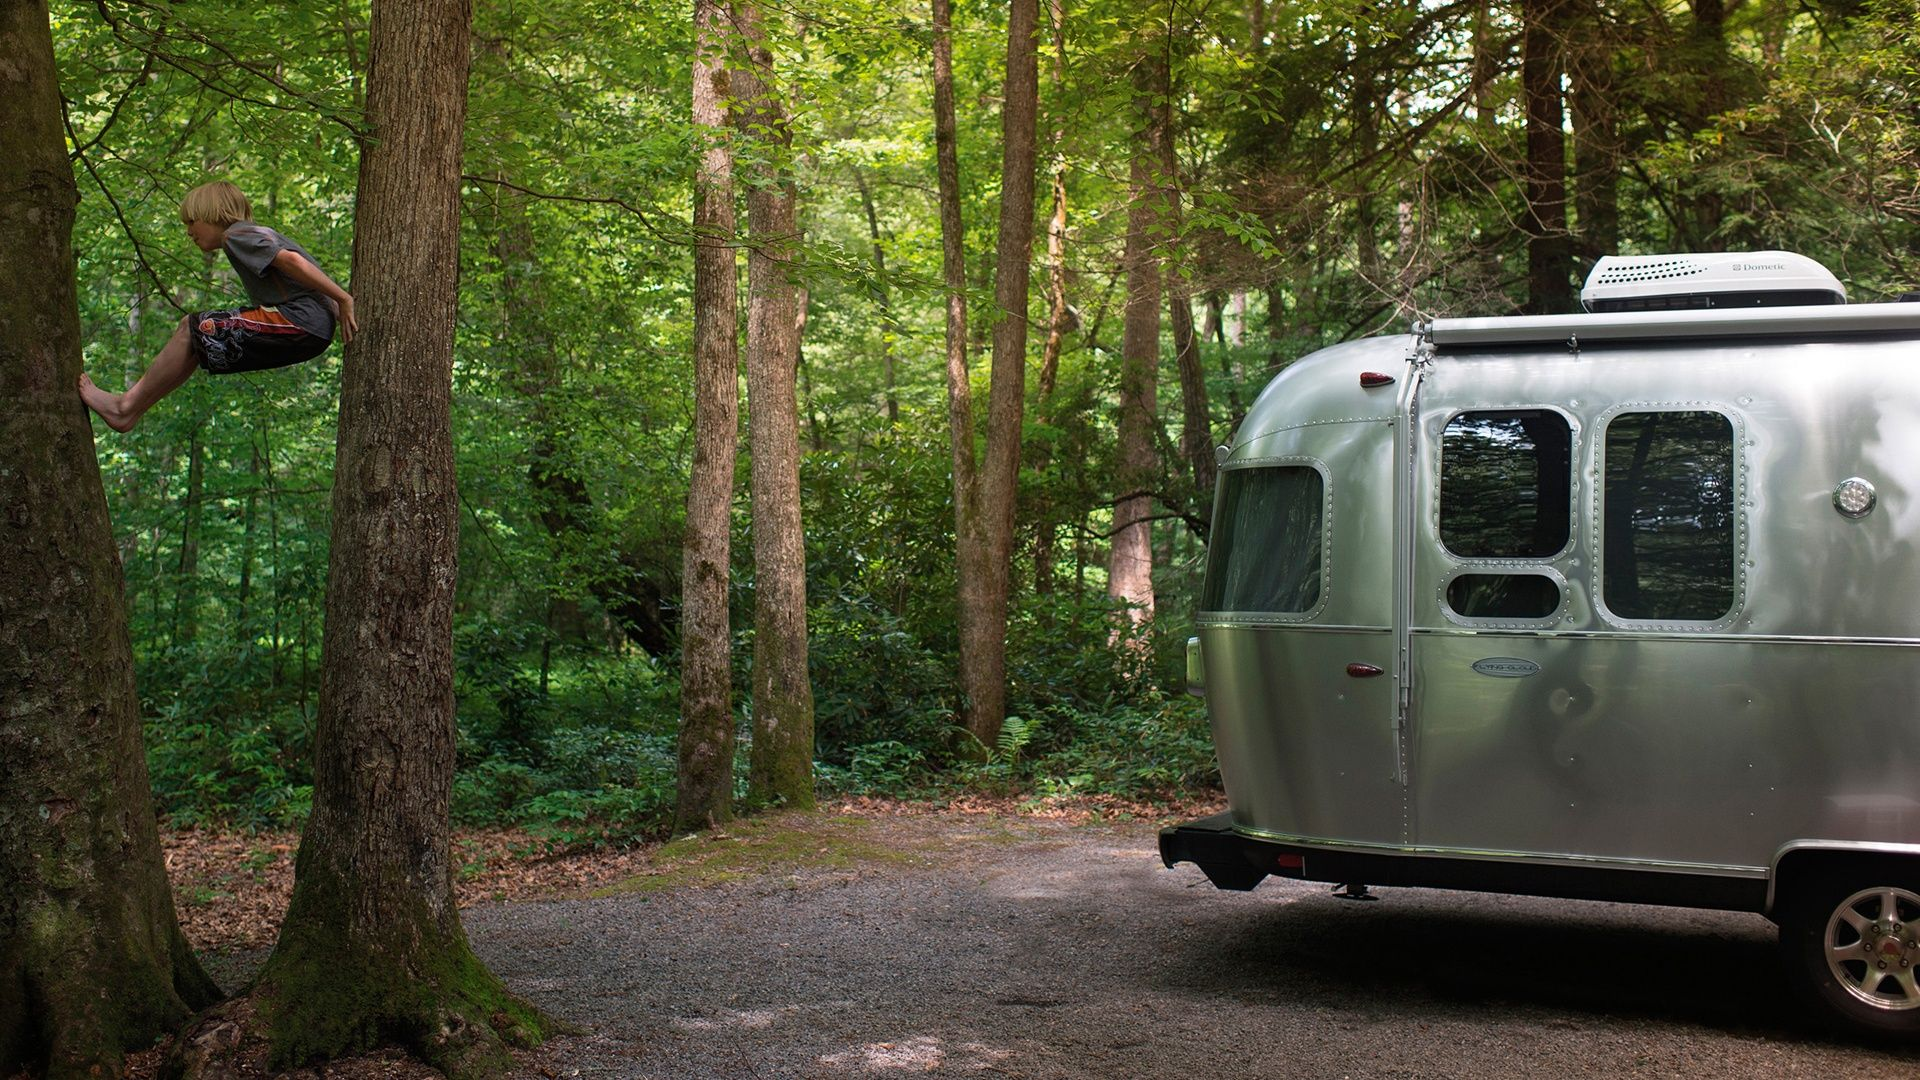 Airstream's New Camping Trailer Has the Perfect Invention for Modern Travel